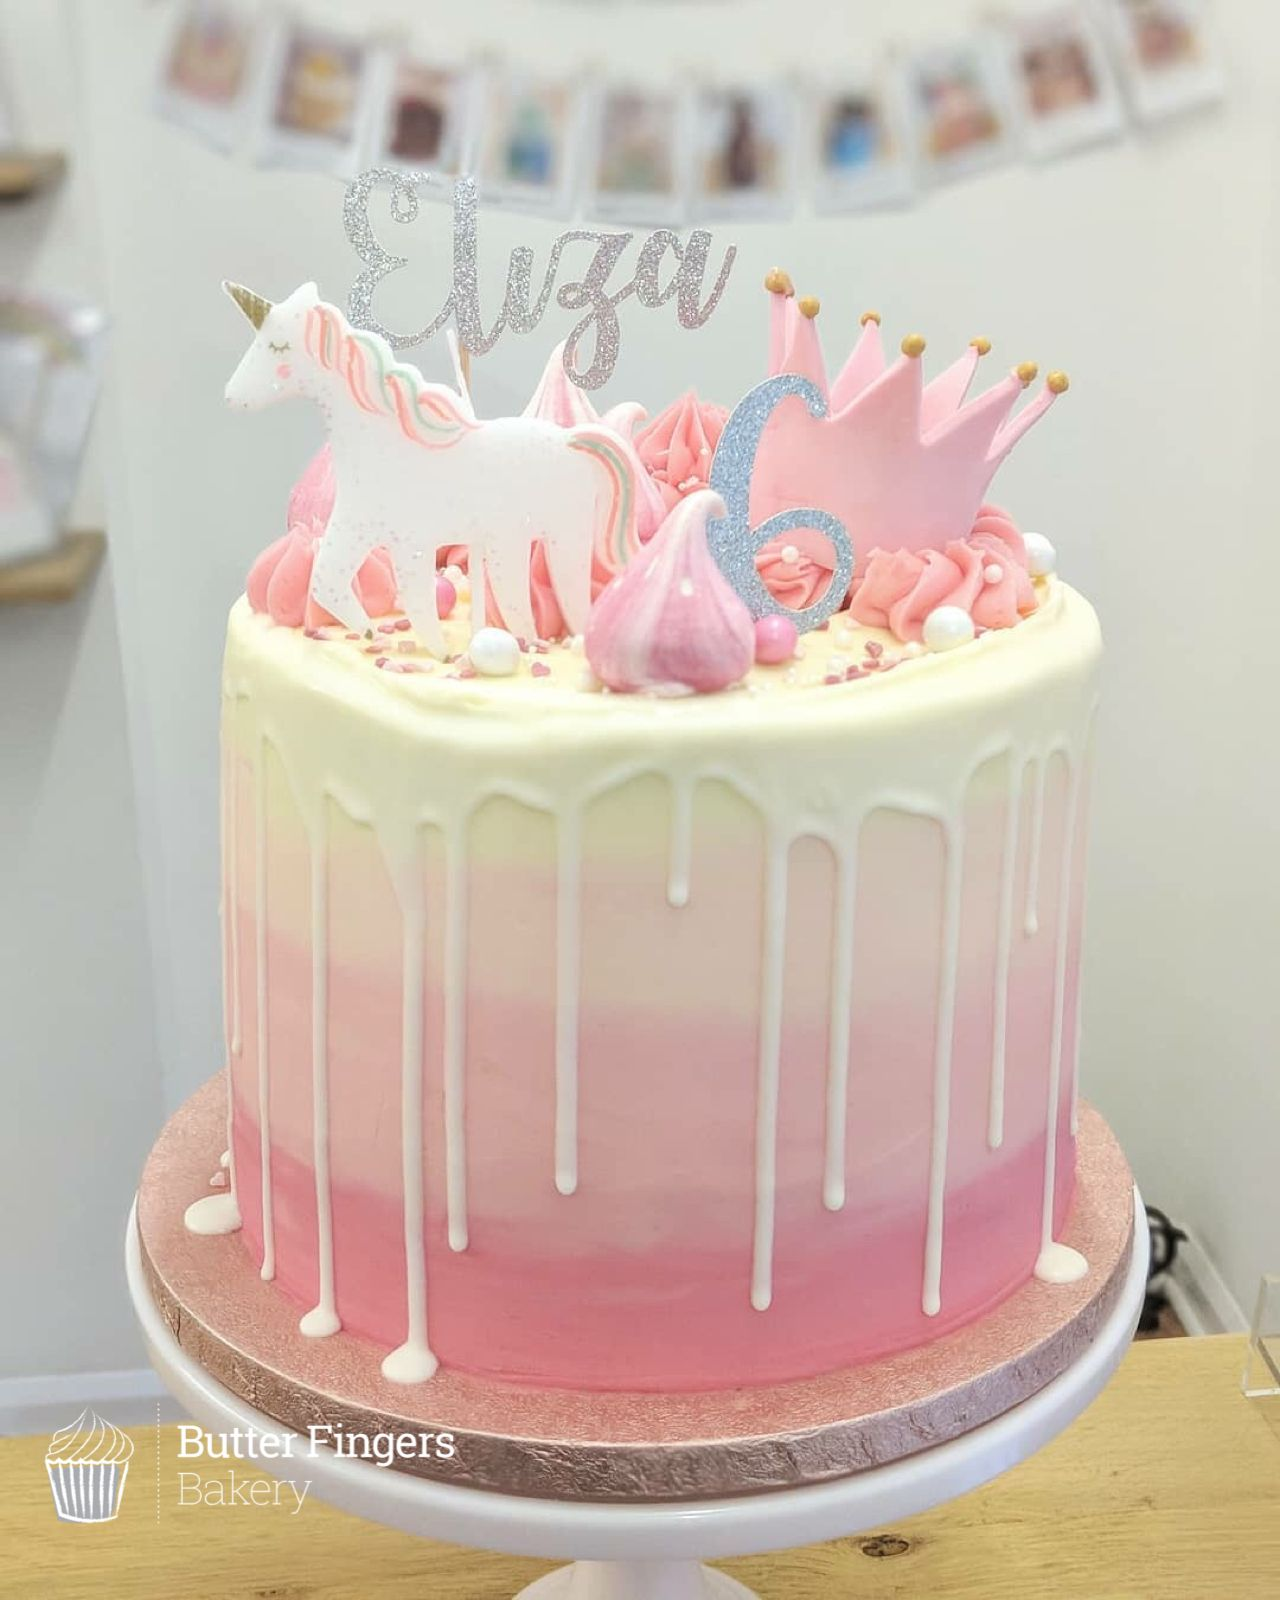 Super Girly Pink Unicorn And Princess Themed Cake For A Girls 6th Birthday Birthdaycake Party Themedcake Pretty